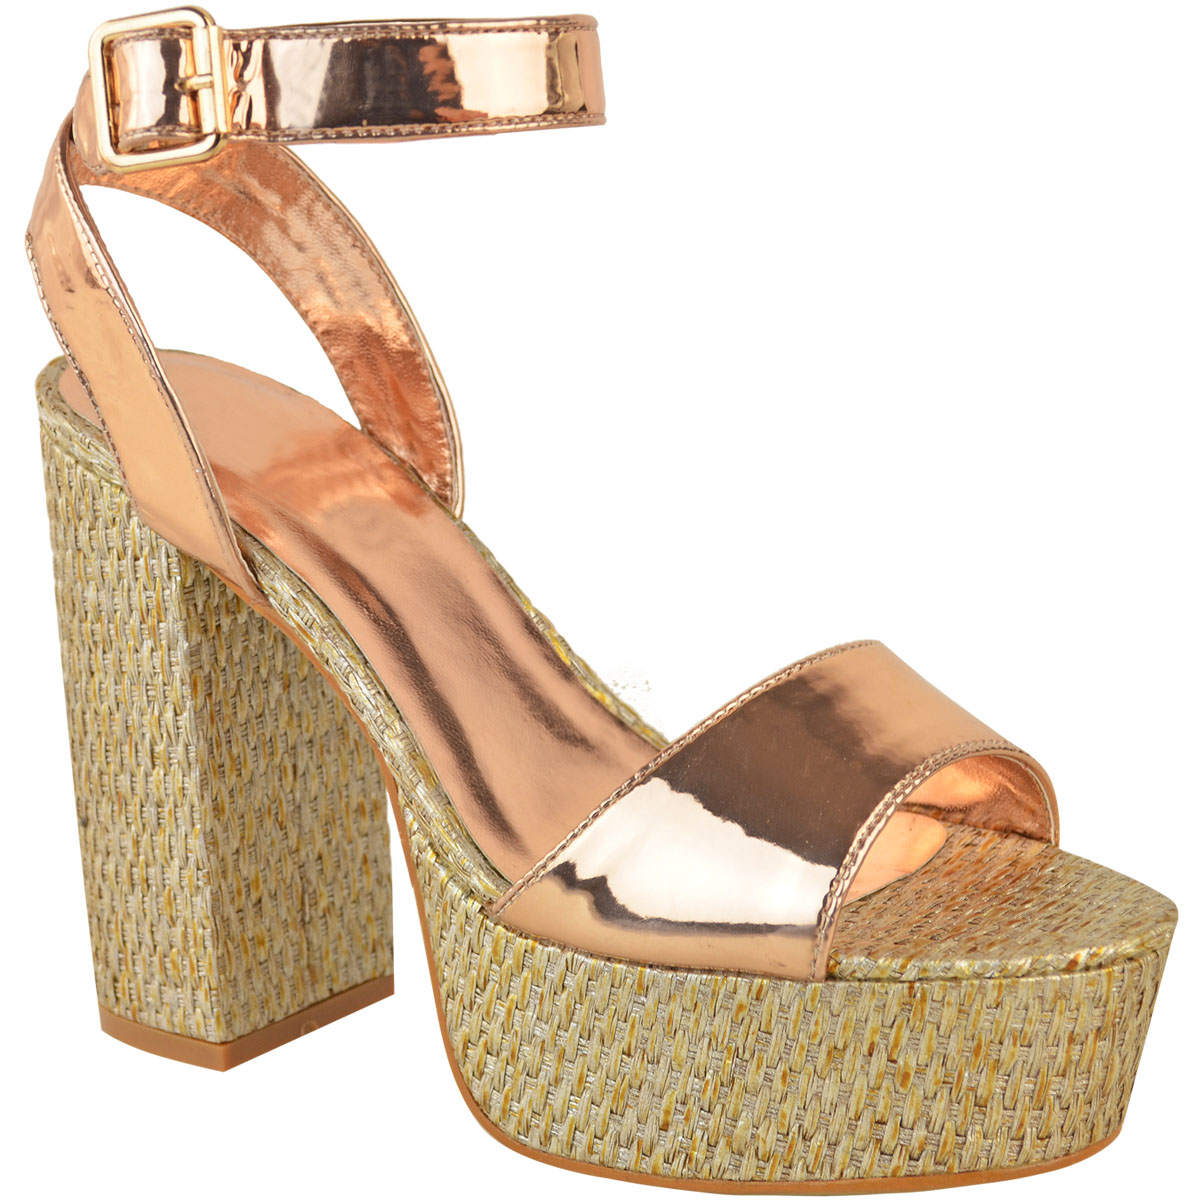 Womens-Ladies-Platforms-Sandals-Block-Heel-Ankle-Strap-Summer-Barely-There-Size thumbnail 3